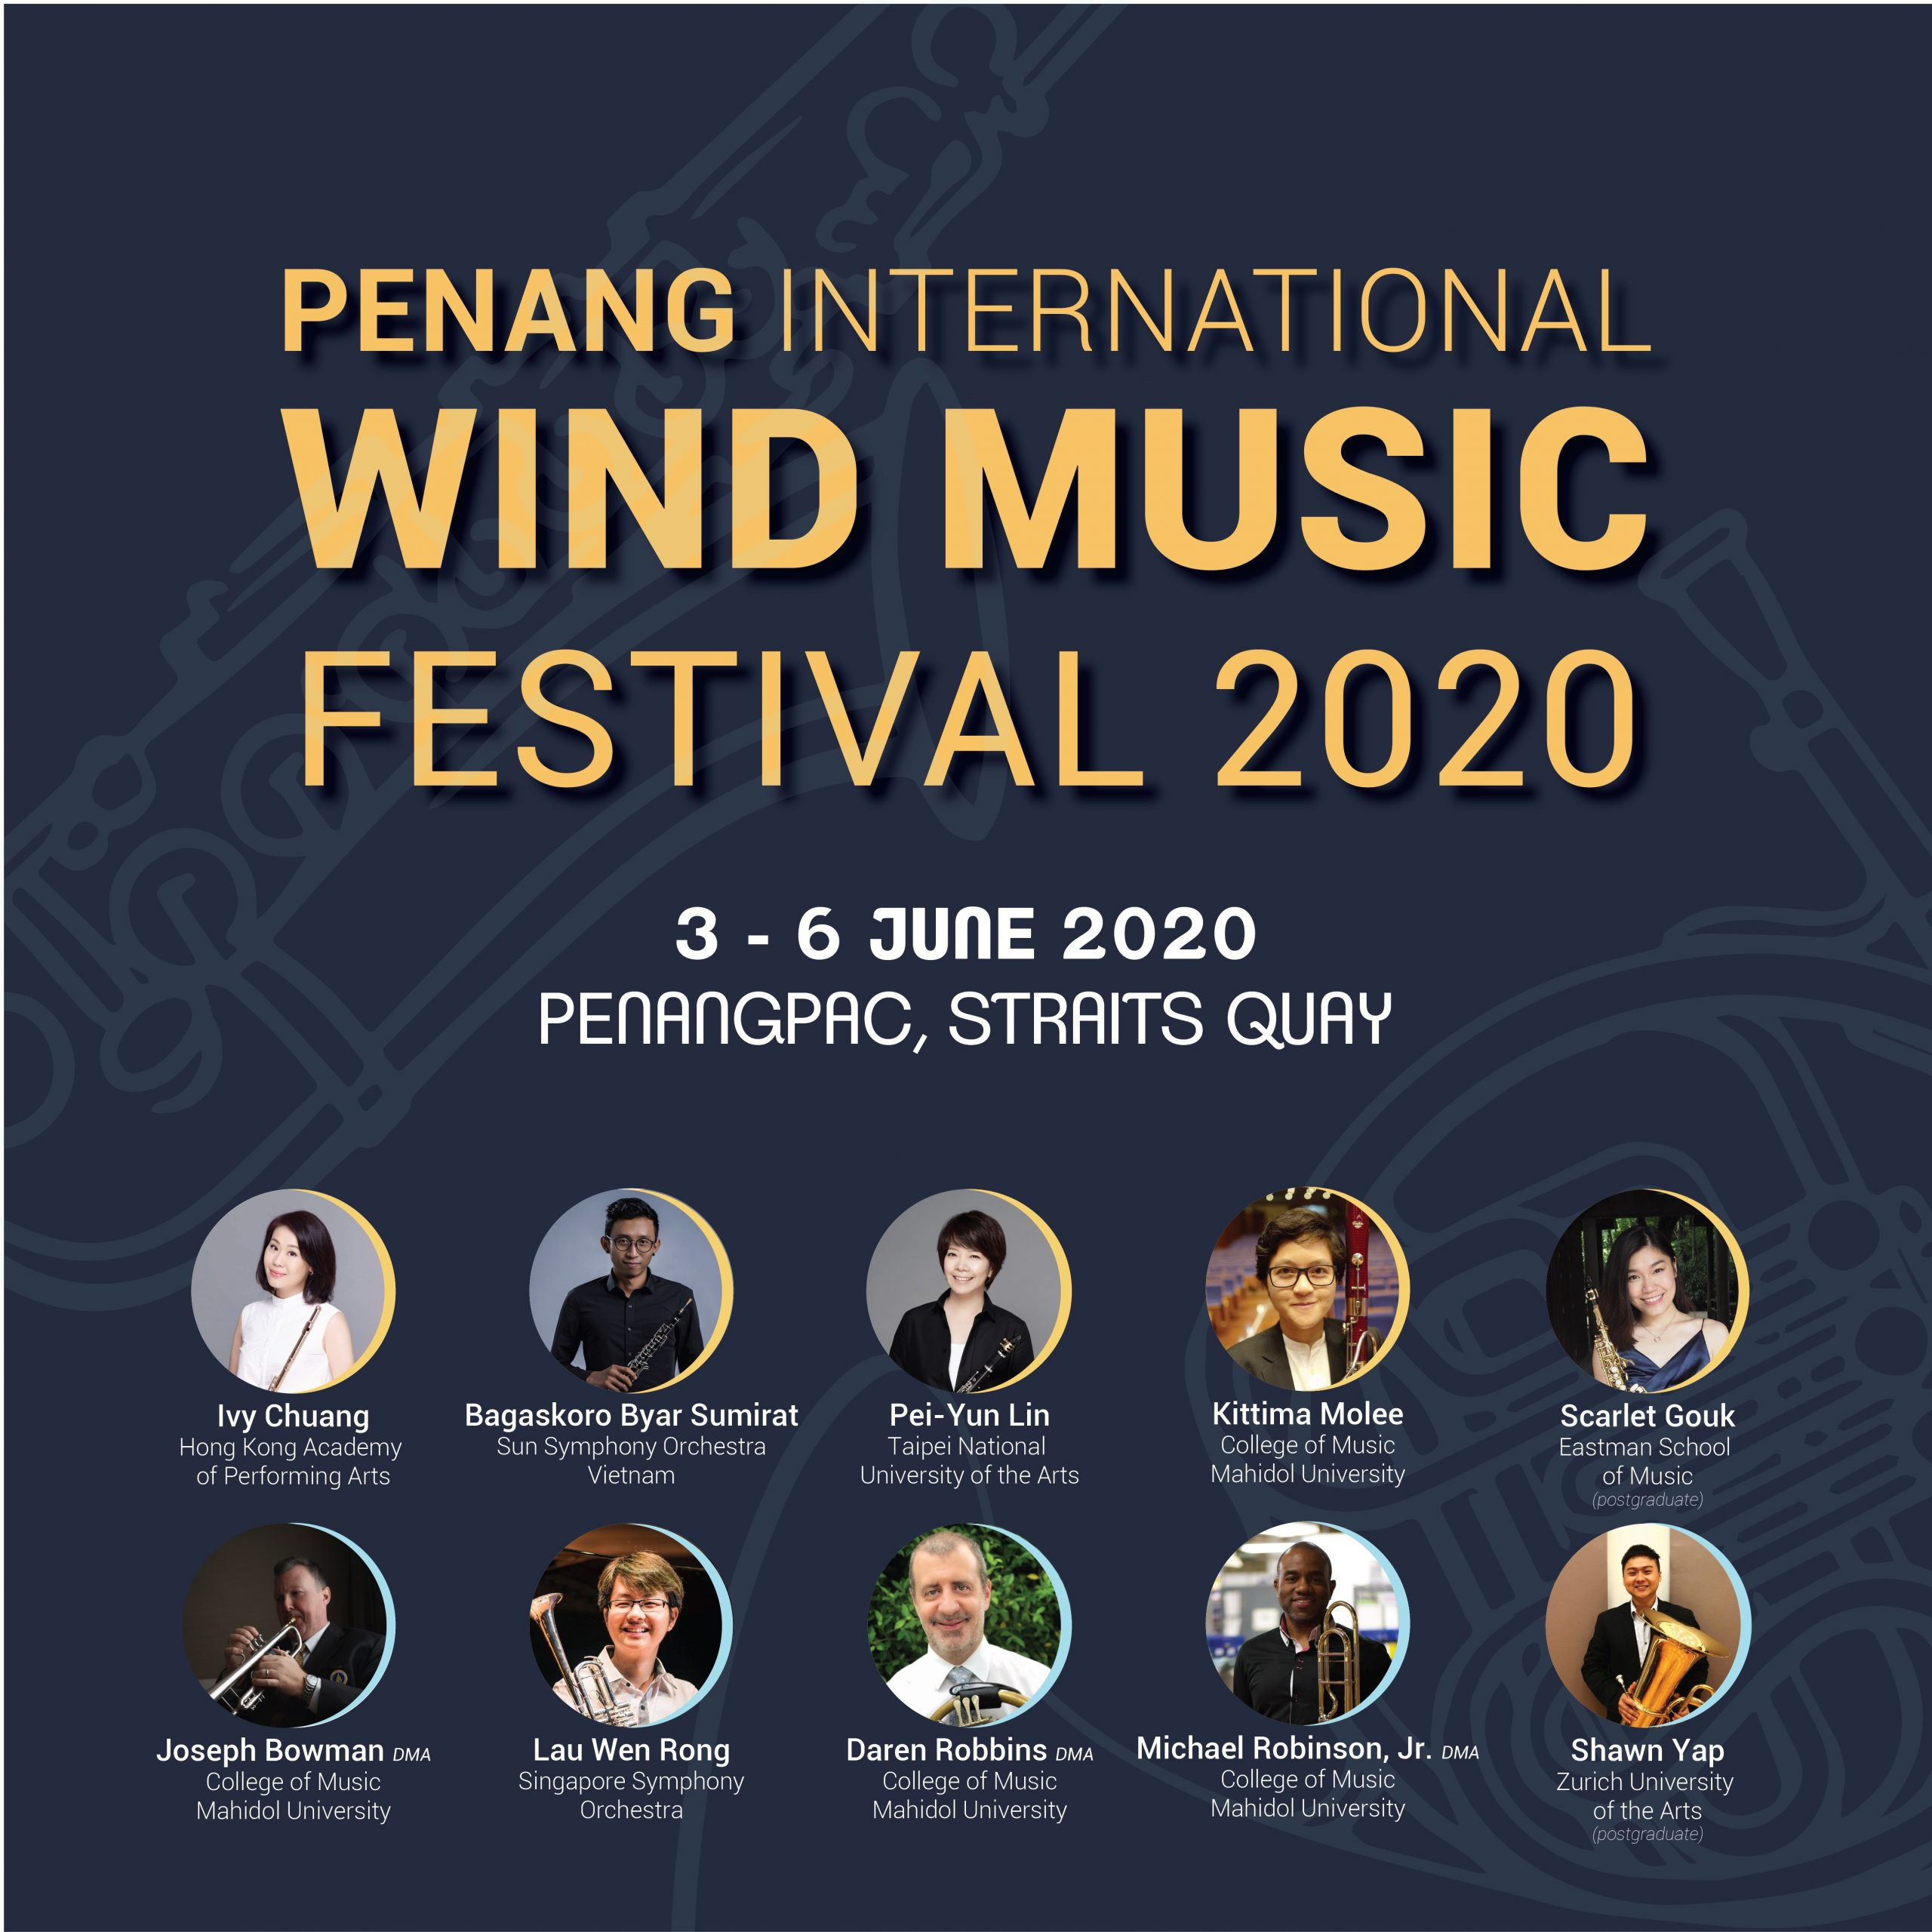 Announcing the Penang International Wind Music Festival 2020